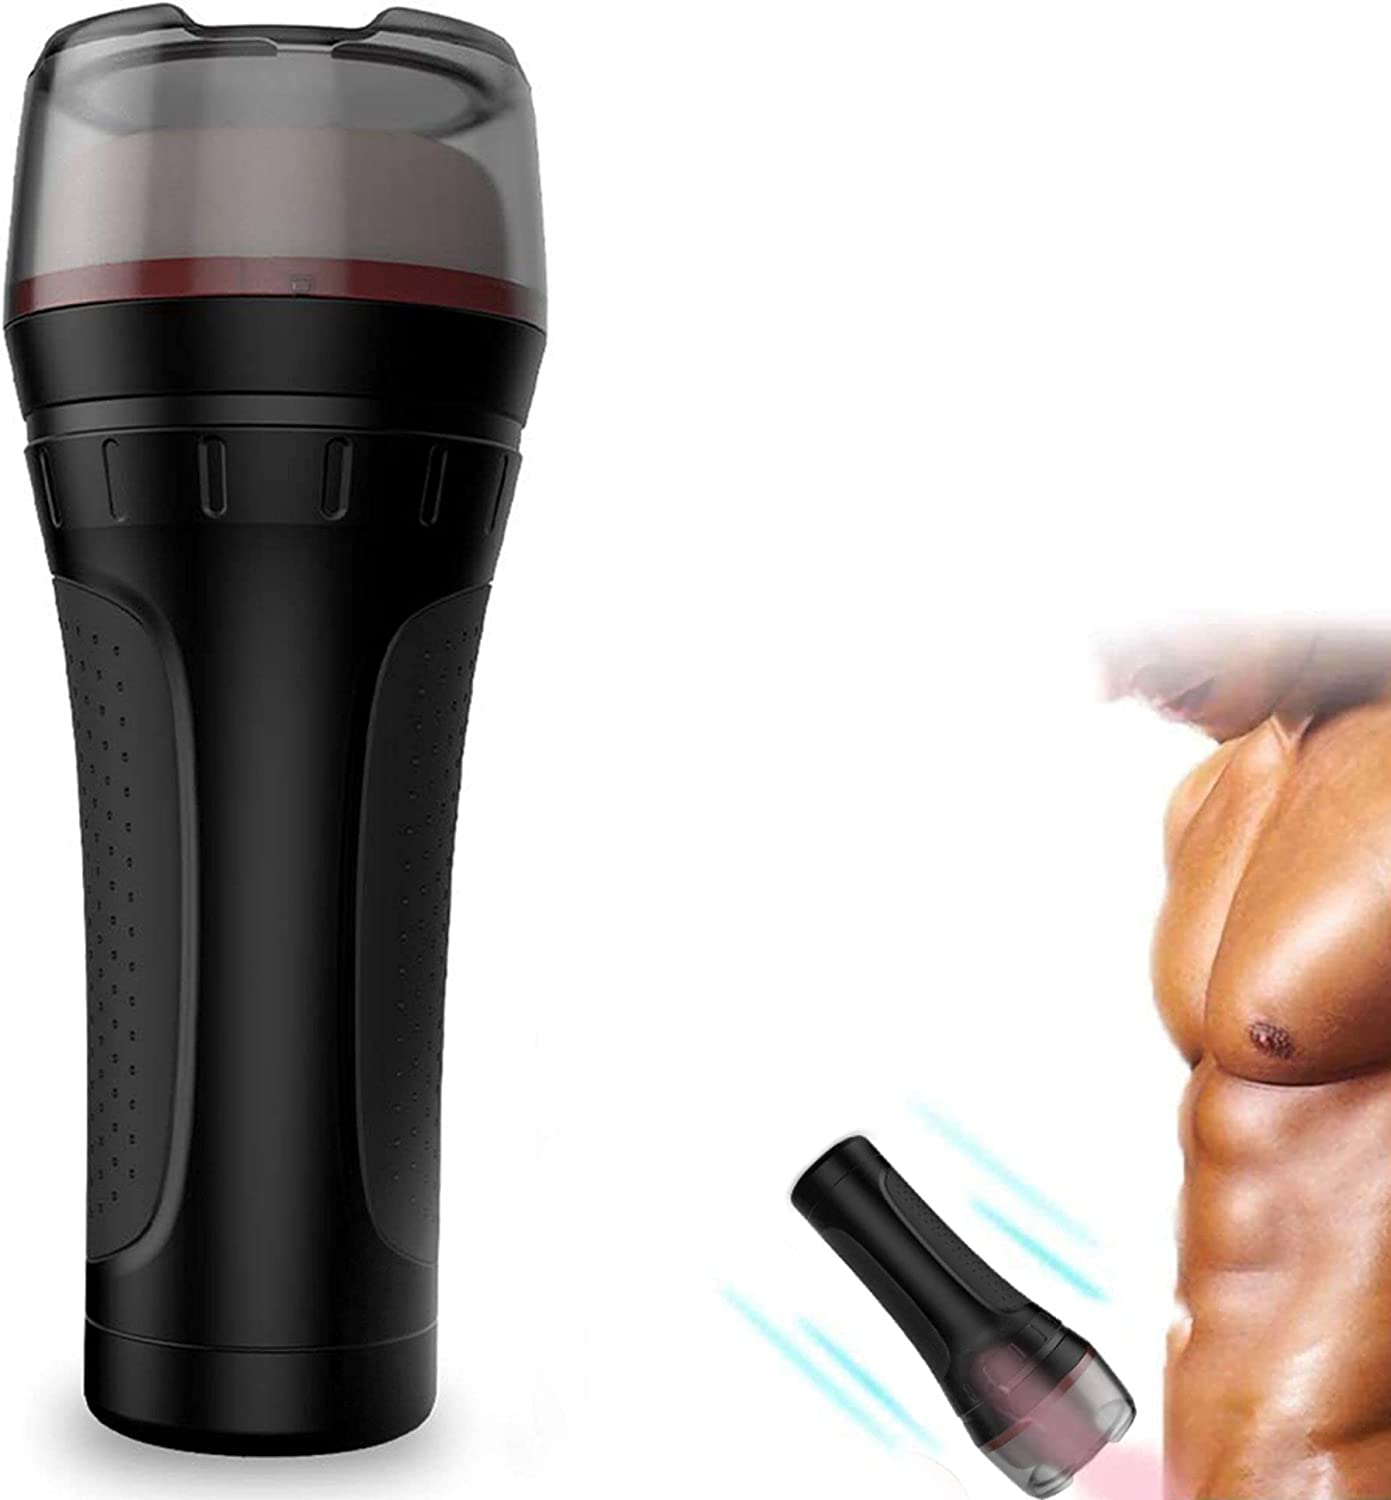 OFFicial mail order Electric Sex Products for Men Vibrating Jacksonville Mall Elect Vibration Powerful